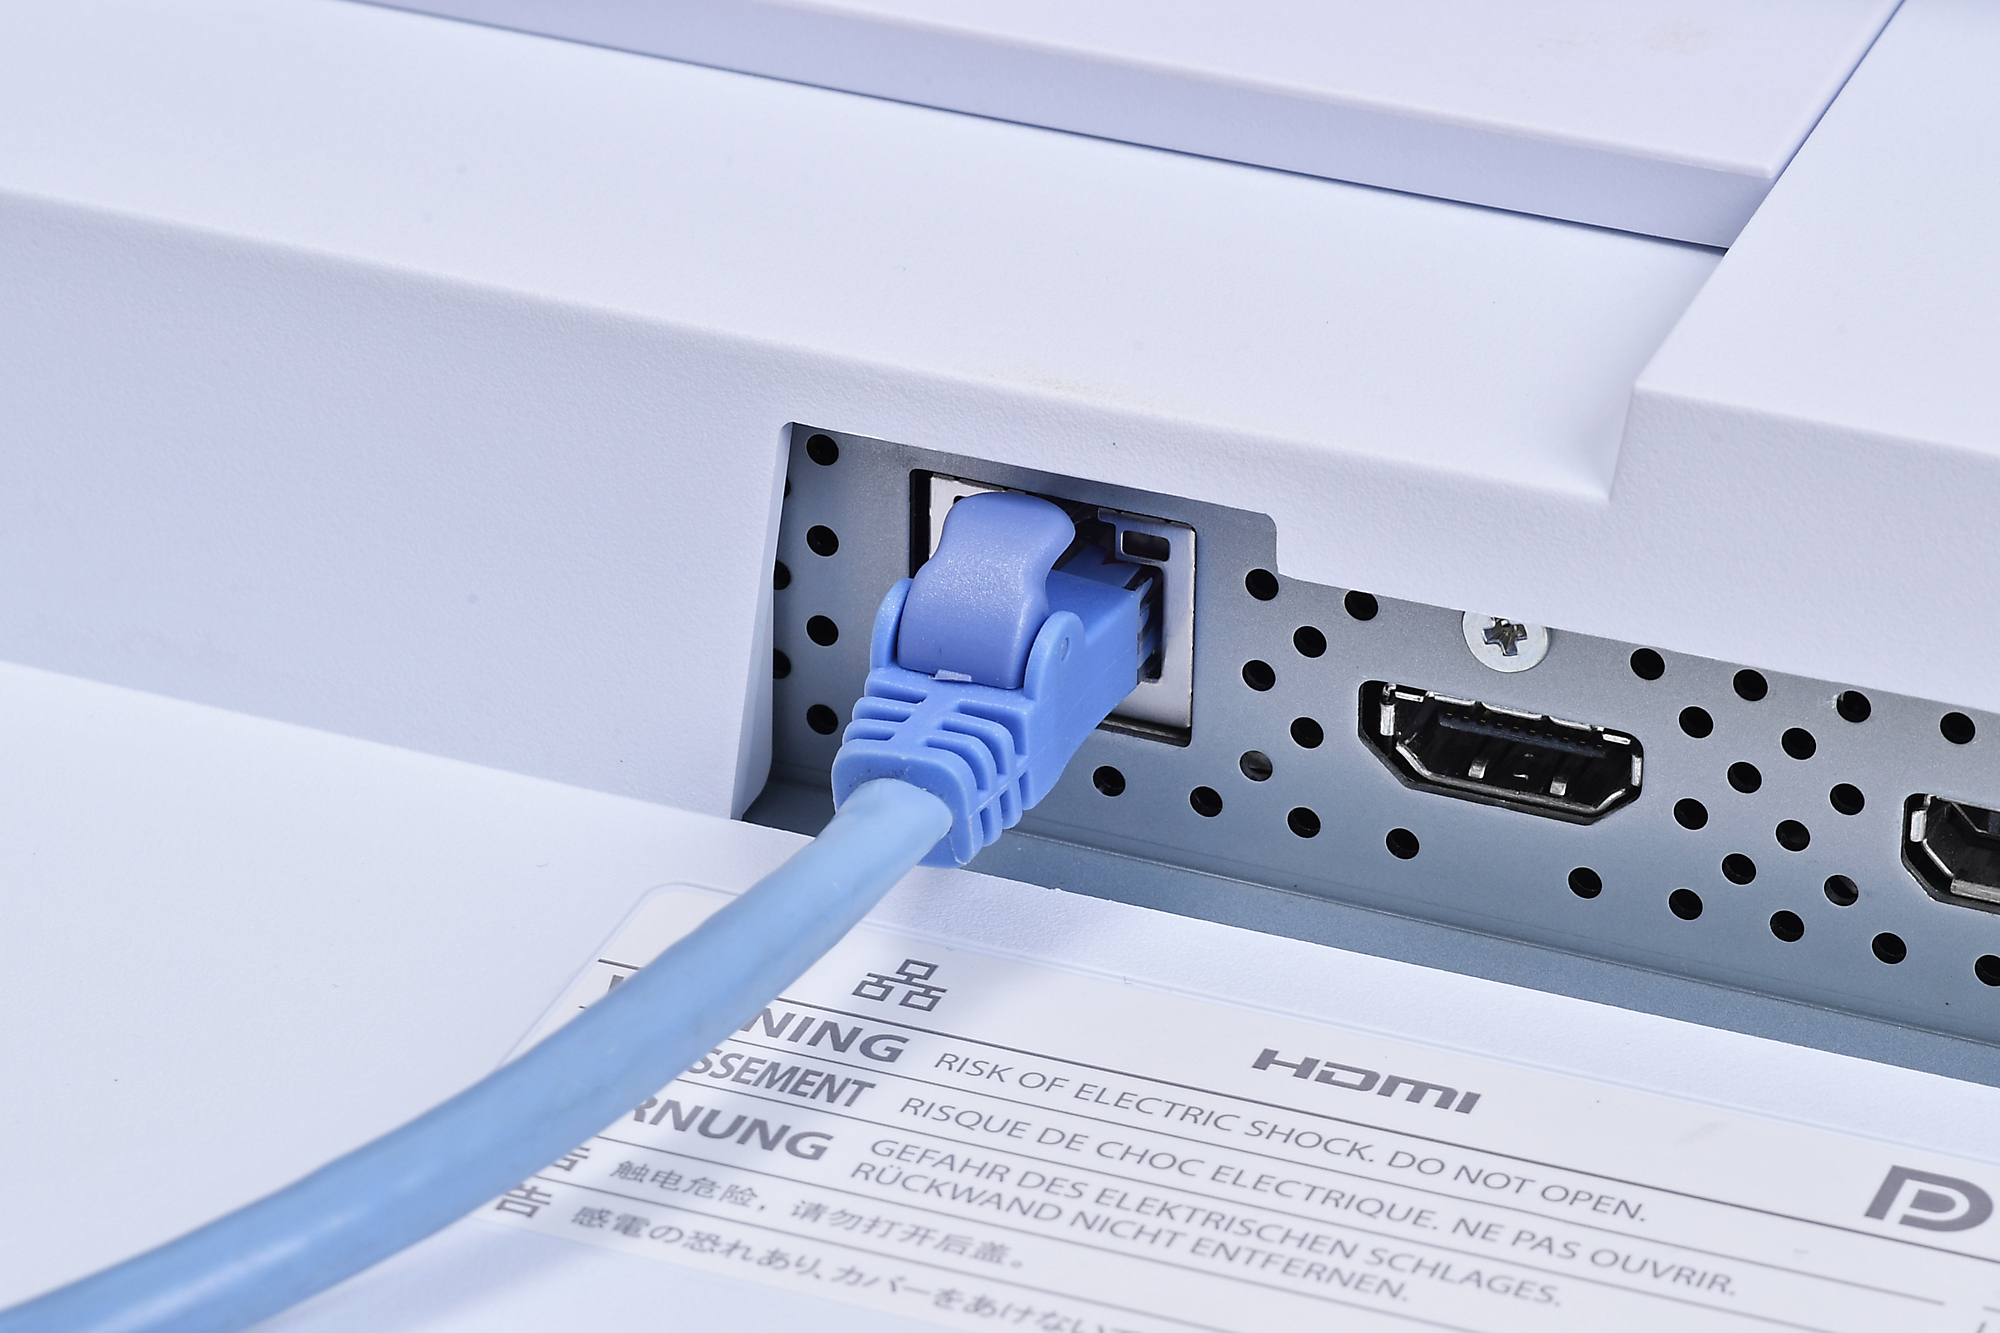 Connect your router or hub directly to the monitor's LAN port for a stable wired connection.